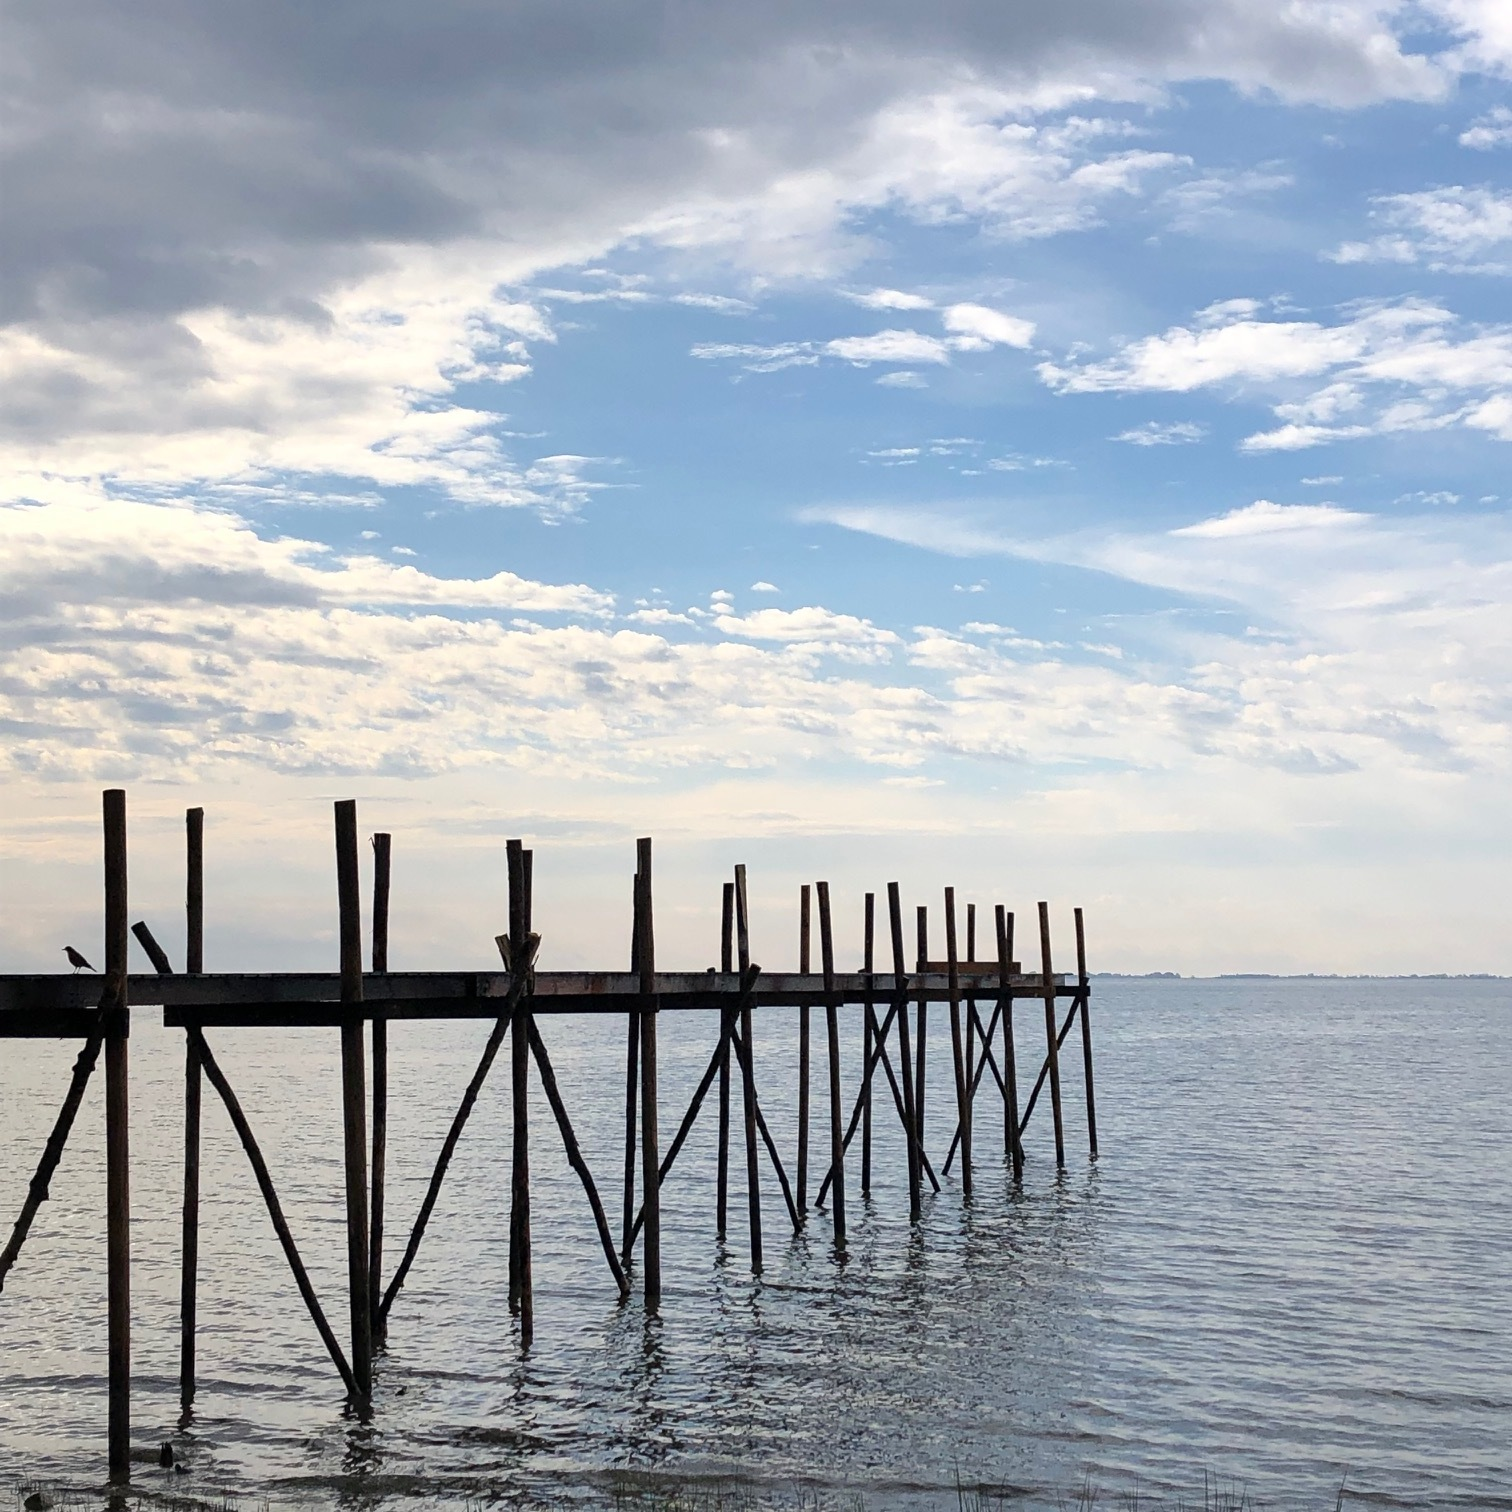 The village of Dunnottar on lake Winnipeg is characterized by its stick dock Piers. Reassembled seasonally they are the perfect communal gathering place.